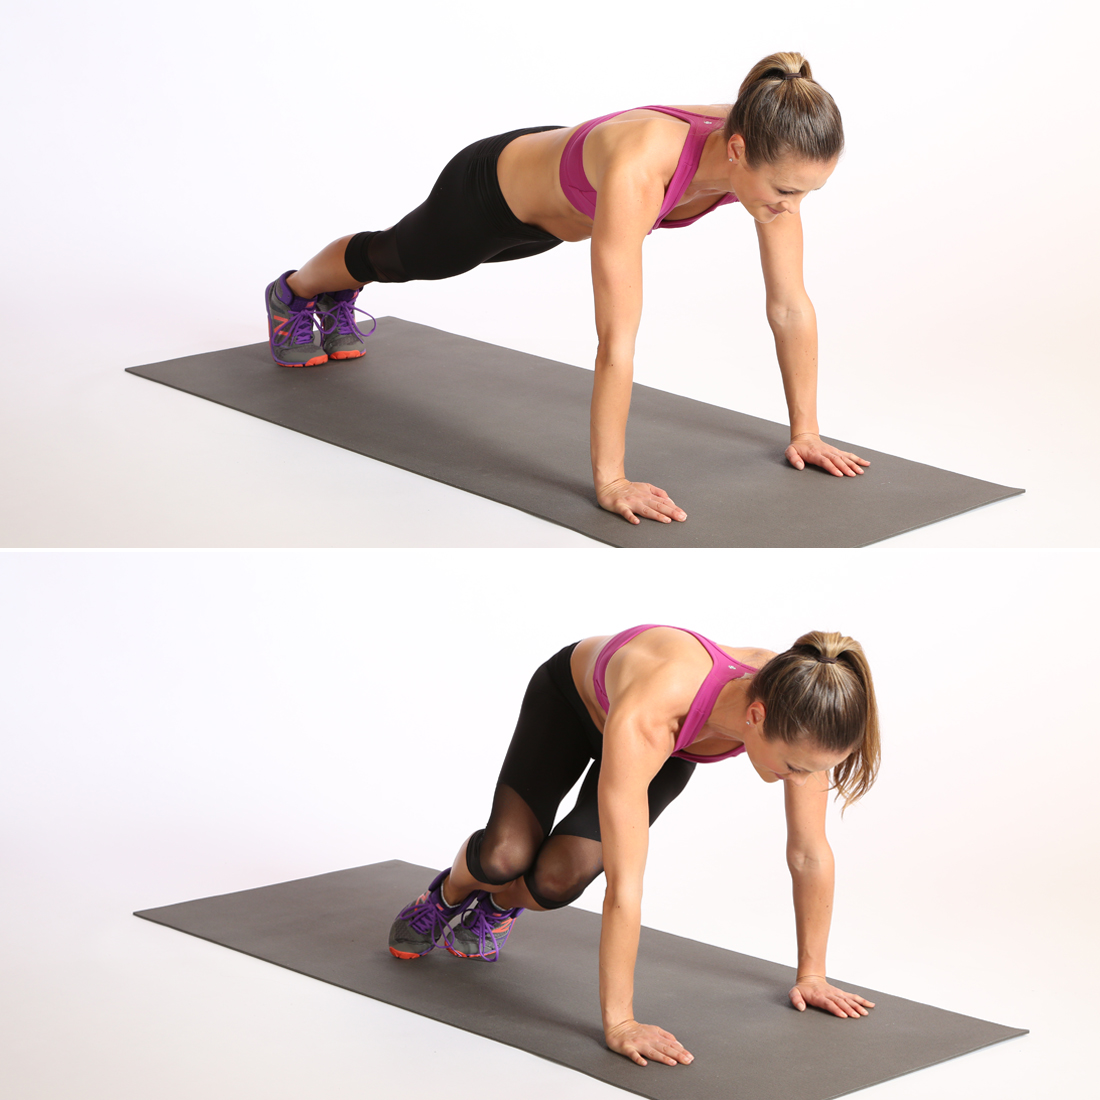 Circuit One: Plank With Bunny Hop